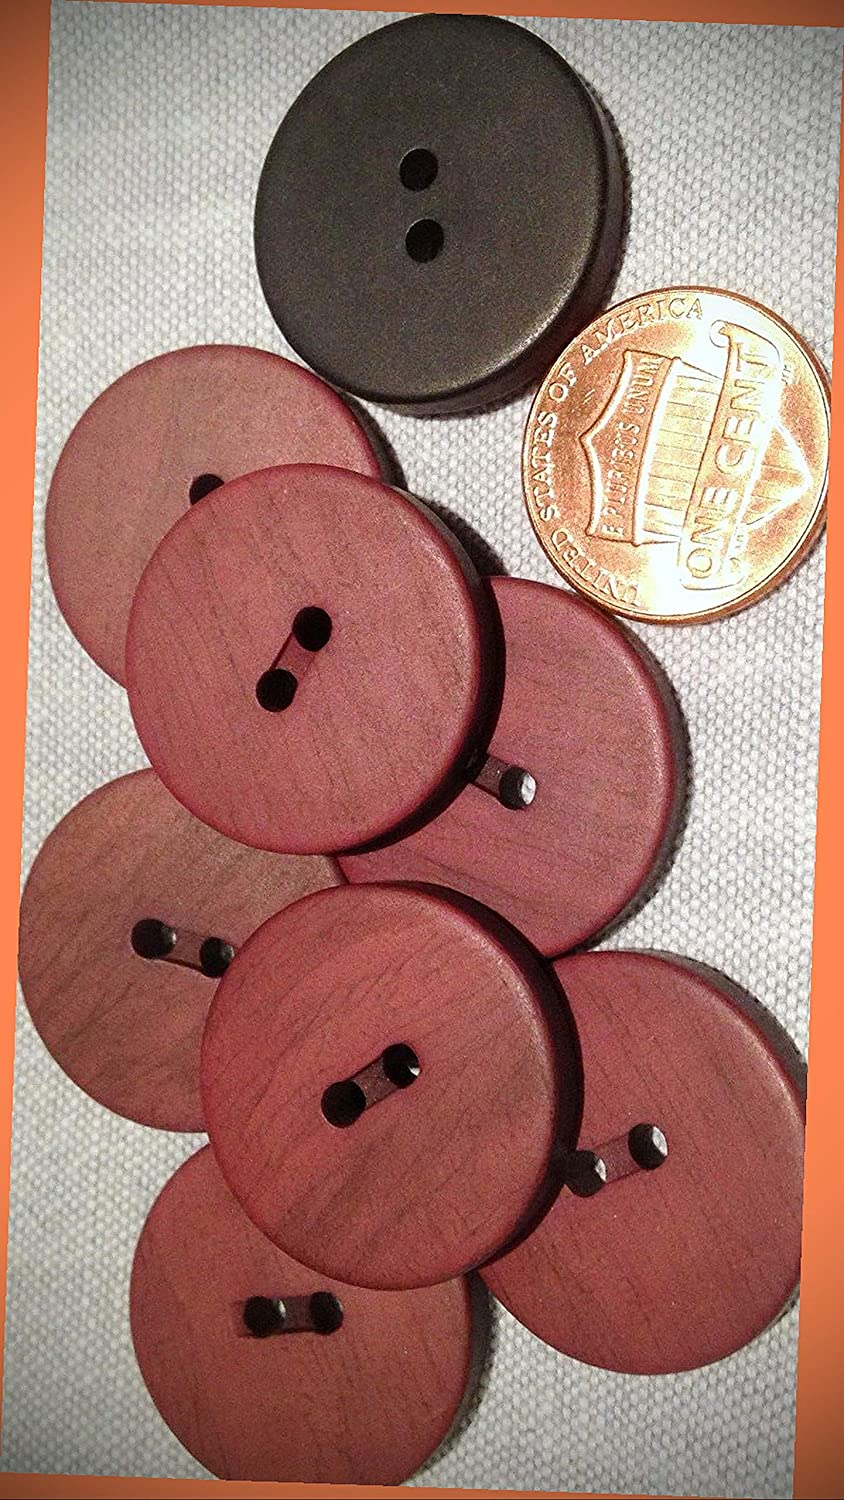 New Lot of 8 Matte Reddish Brown & Black Plastic Sew-Through DIY Sewing Buttons 23mm 7/8